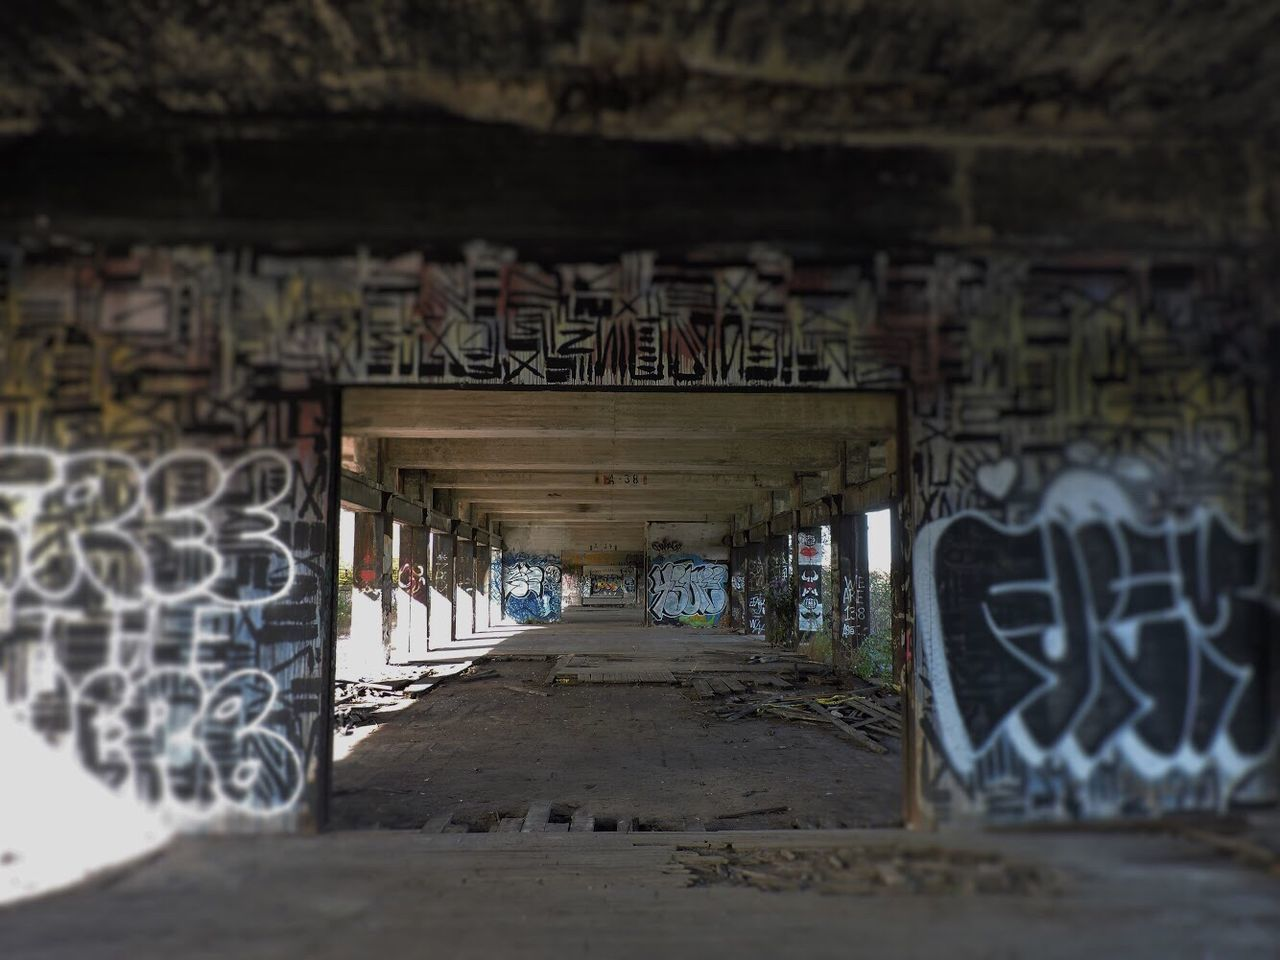 graffiti, text, architecture, built structure, indoors, day, no people